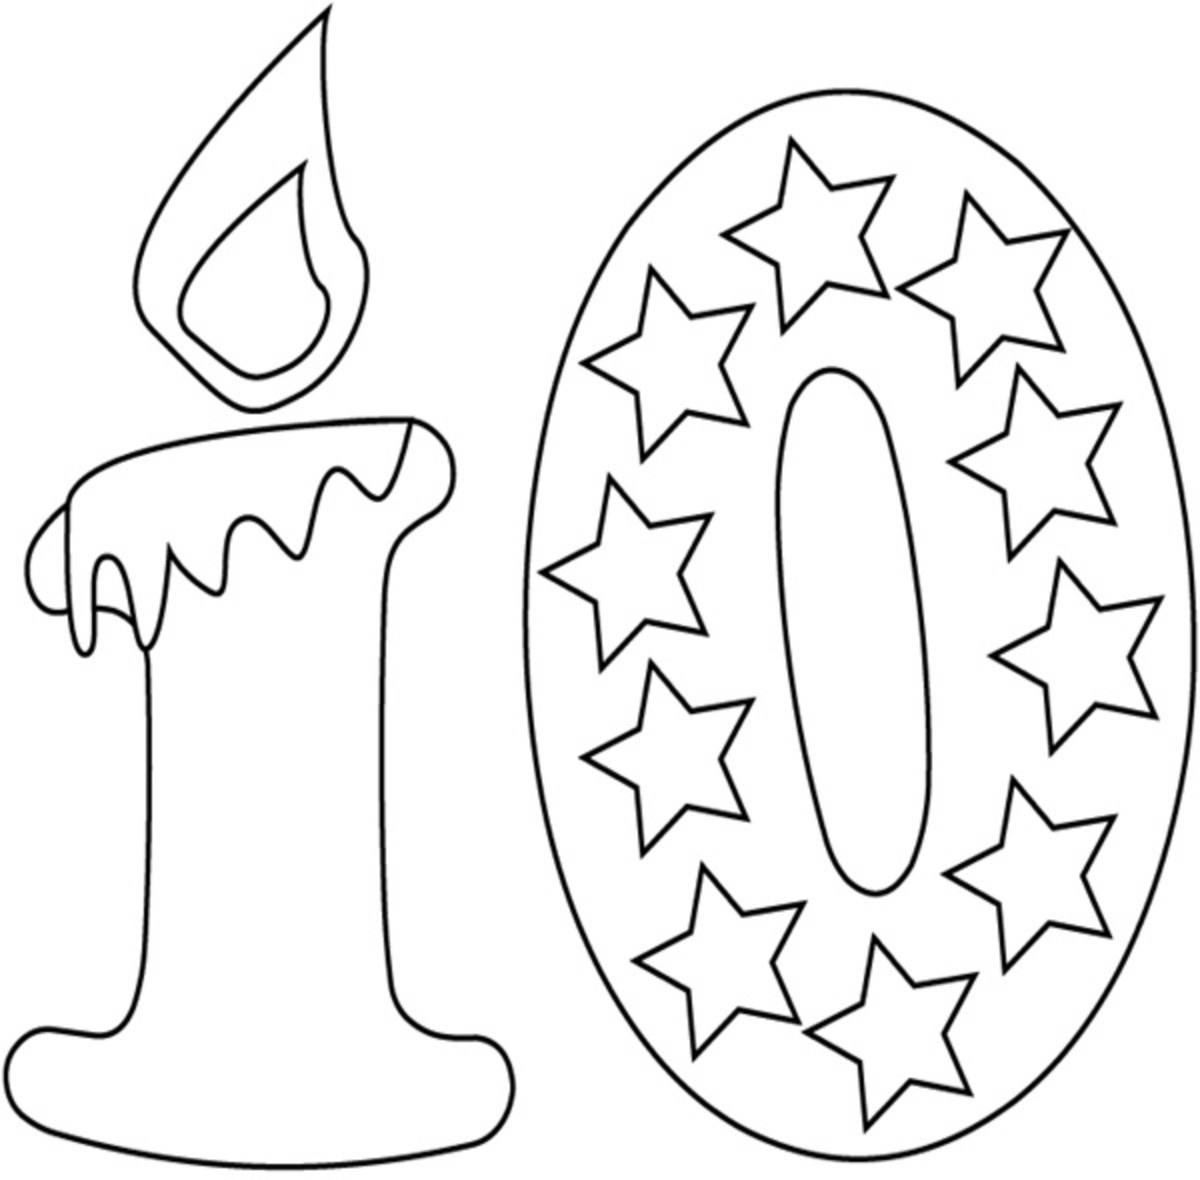 Number ten birthday monogram coloring sheet